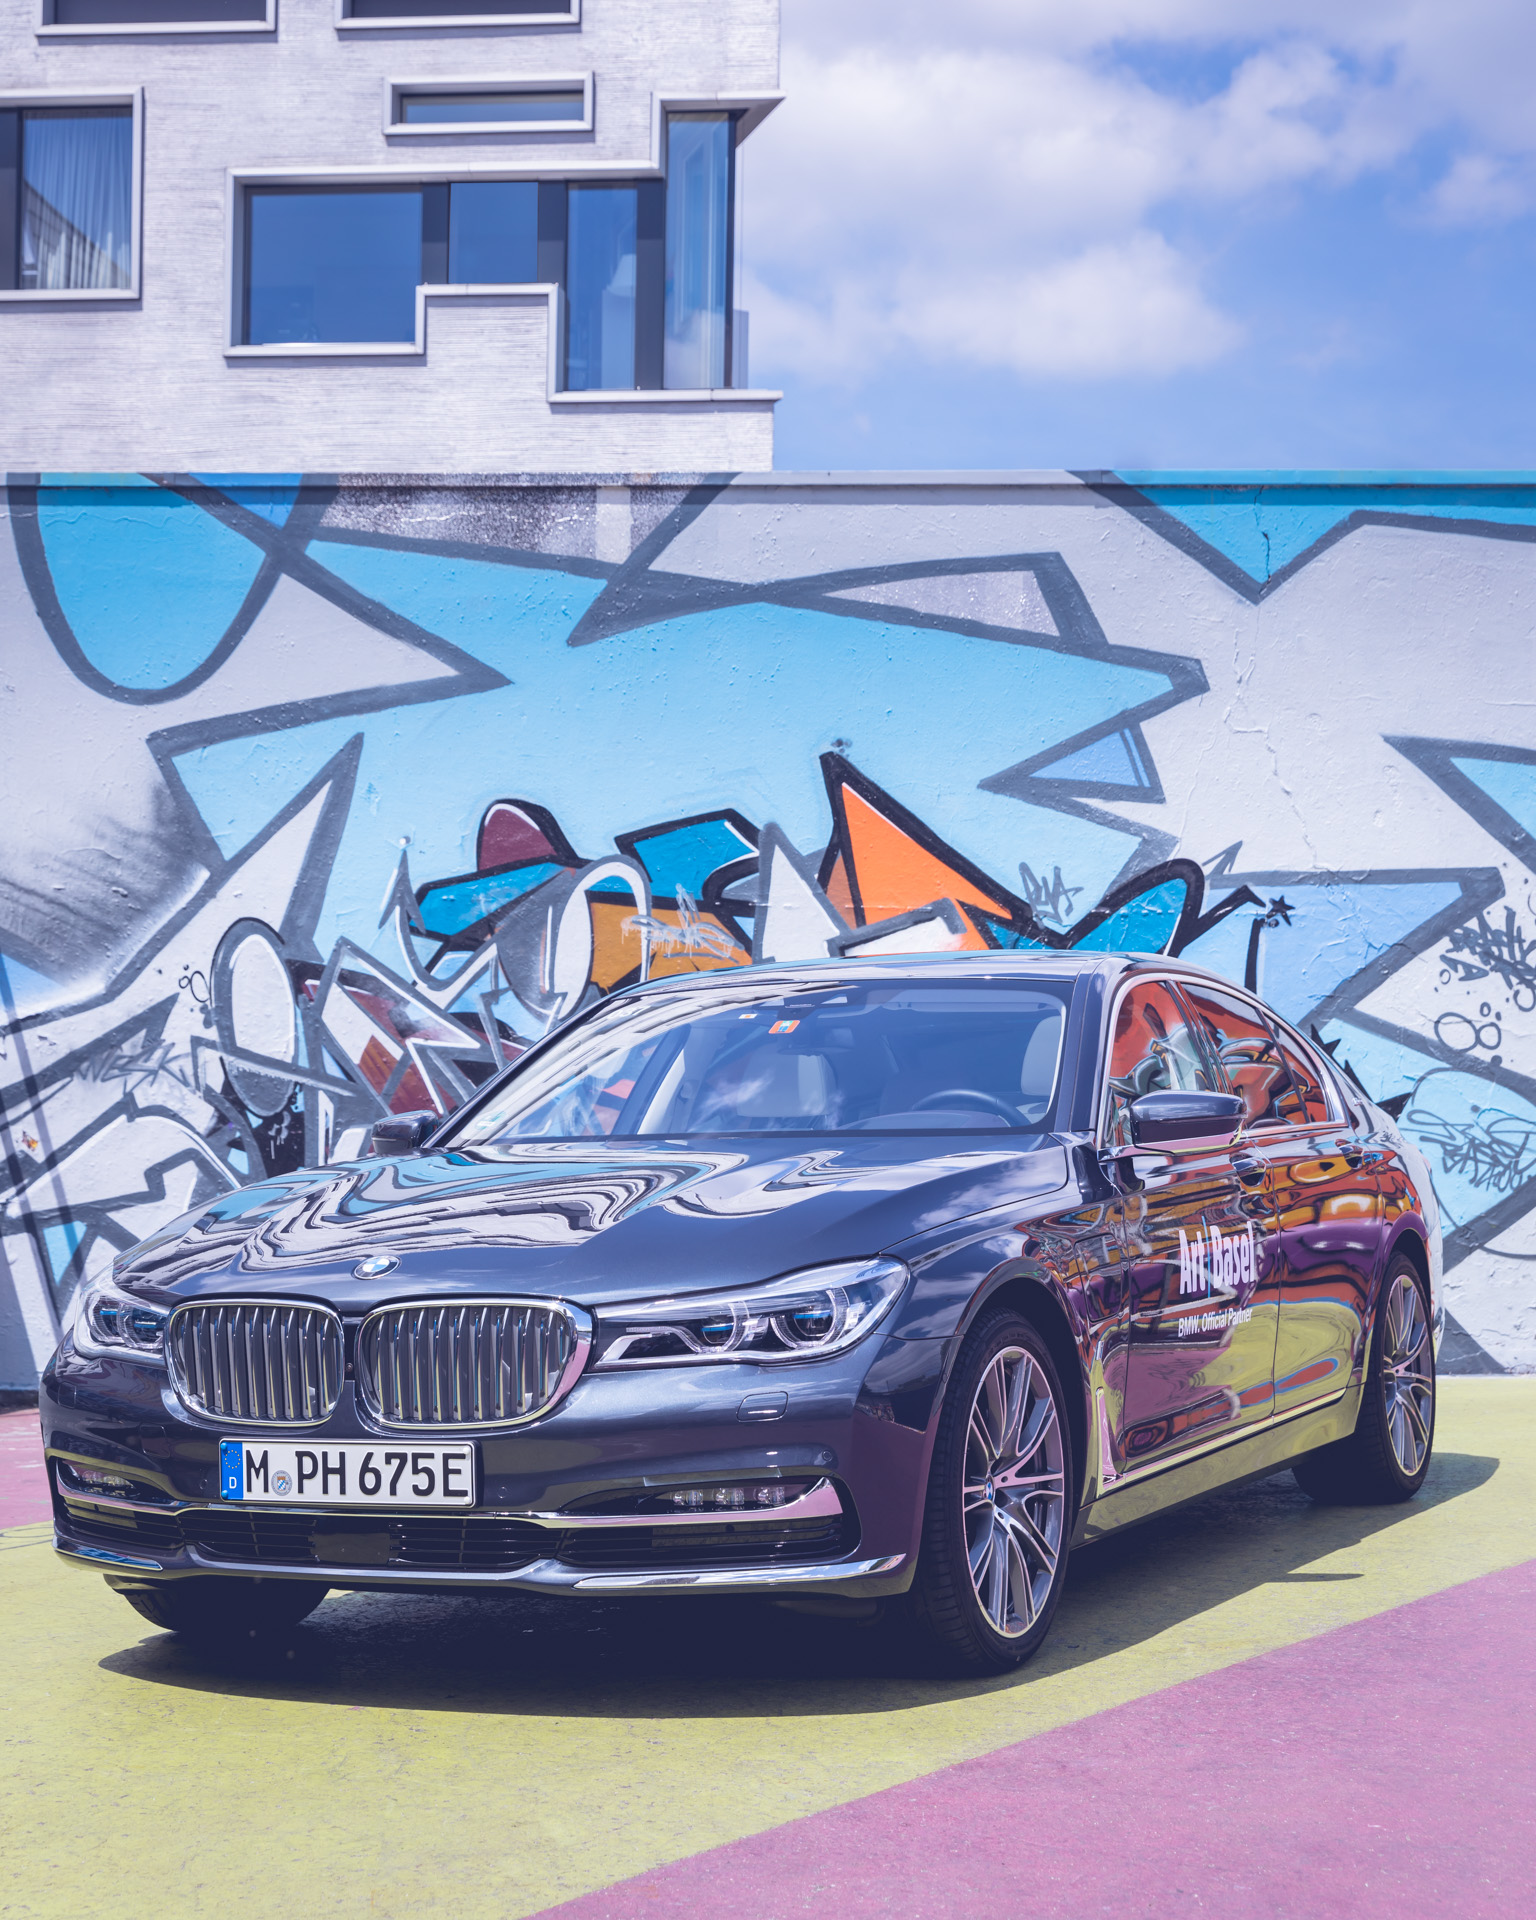 Art Basel BMW Culture 7er 7 series 2018 vor Graffiti in Basel Urban frontal